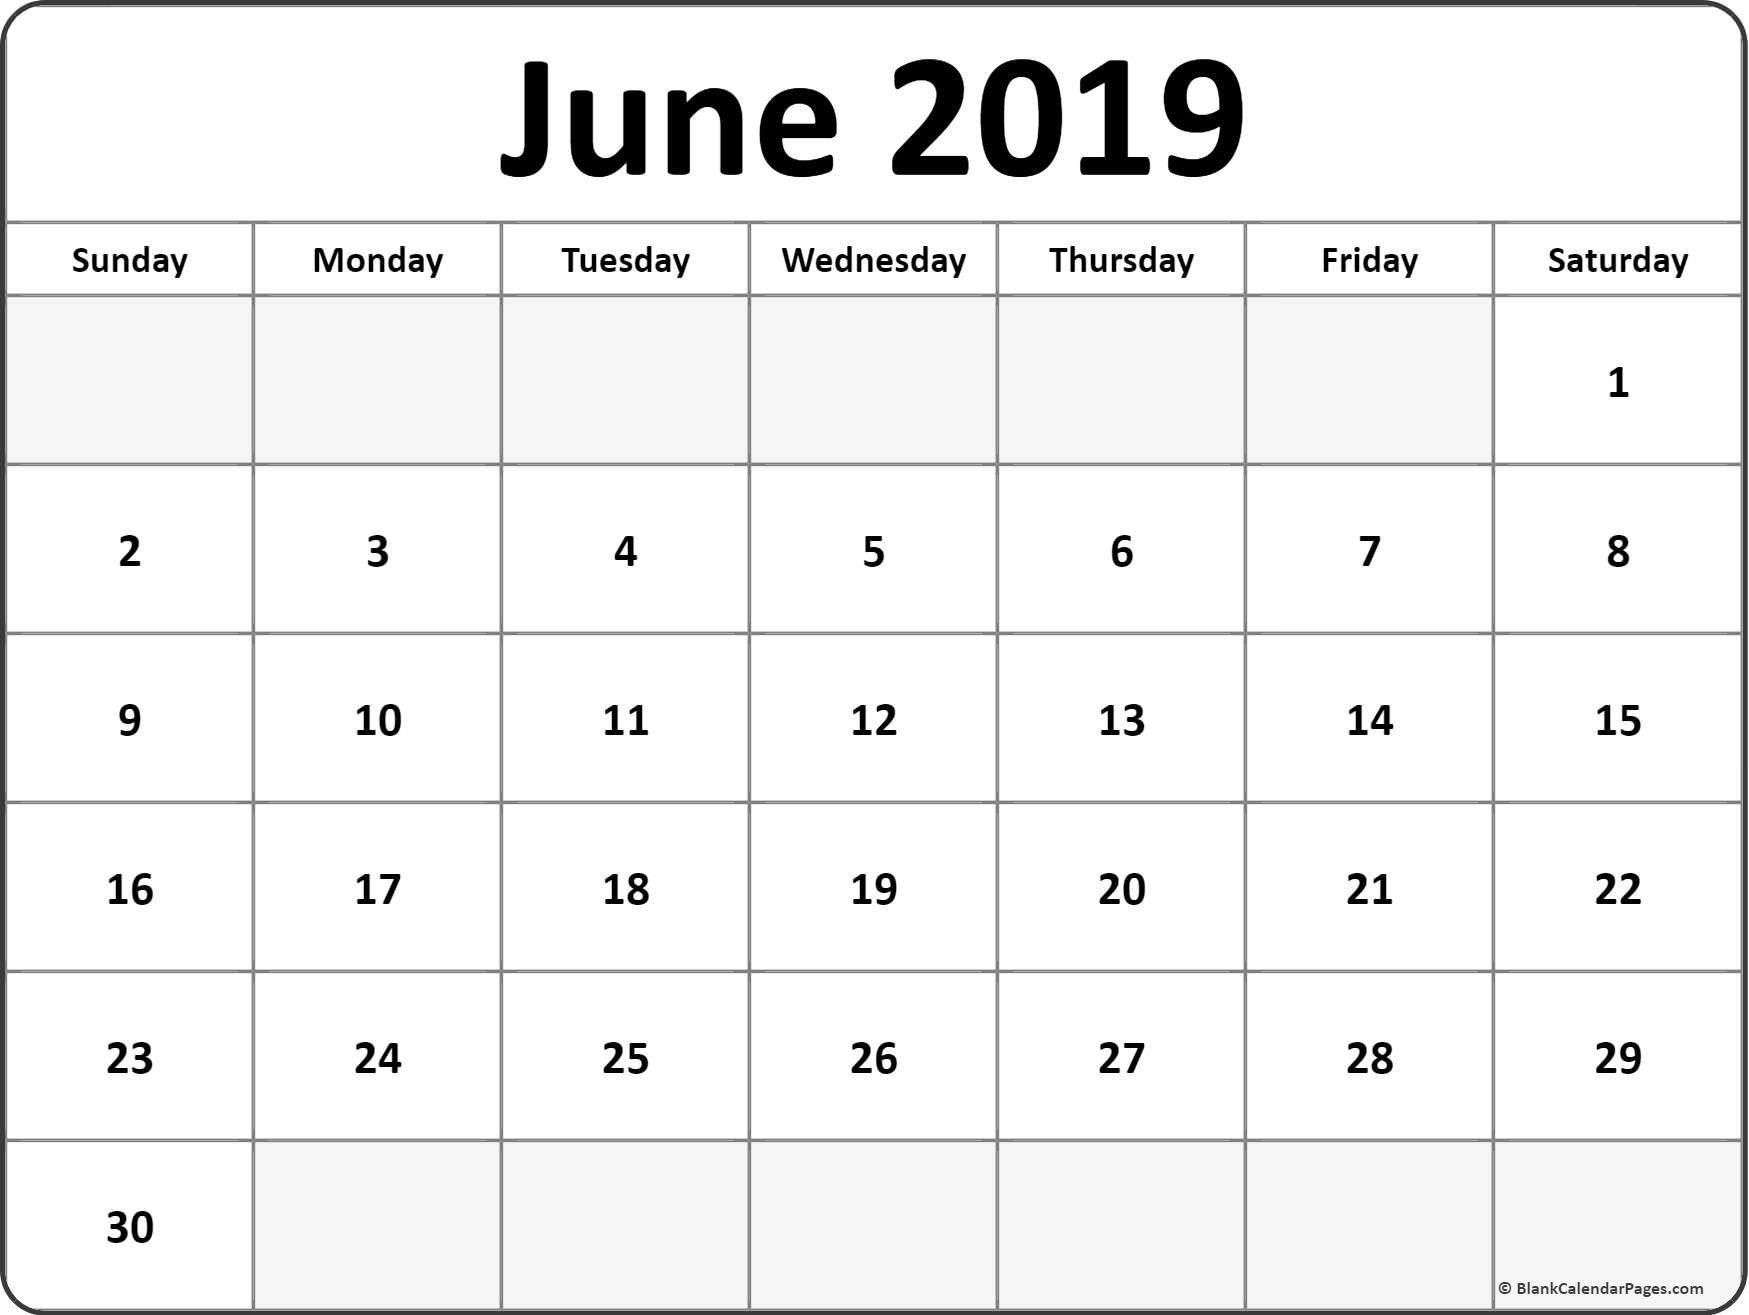 A Monthly Calendar To Print In 2020 | August Calendar, Print